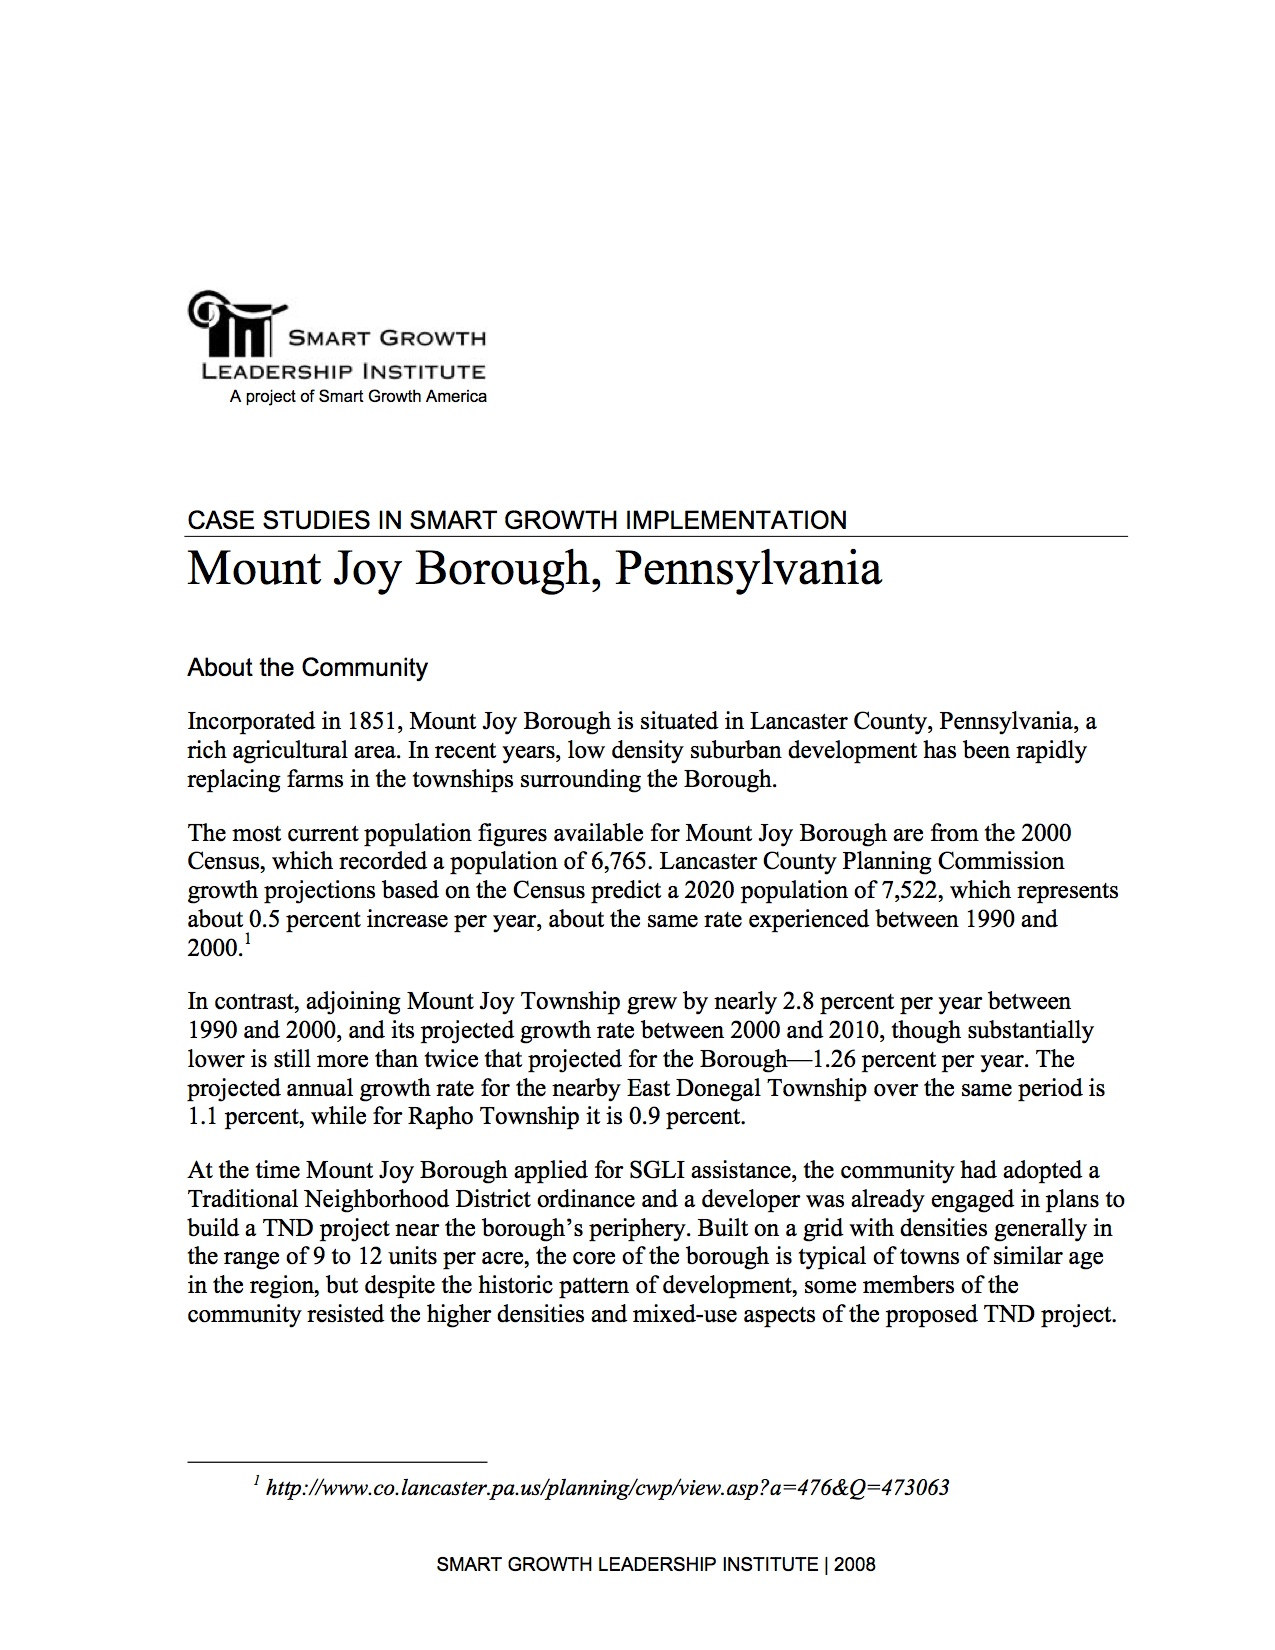 Case Studies in Smart Growth Implementation: Mount Joy Borough, Pennsylvania